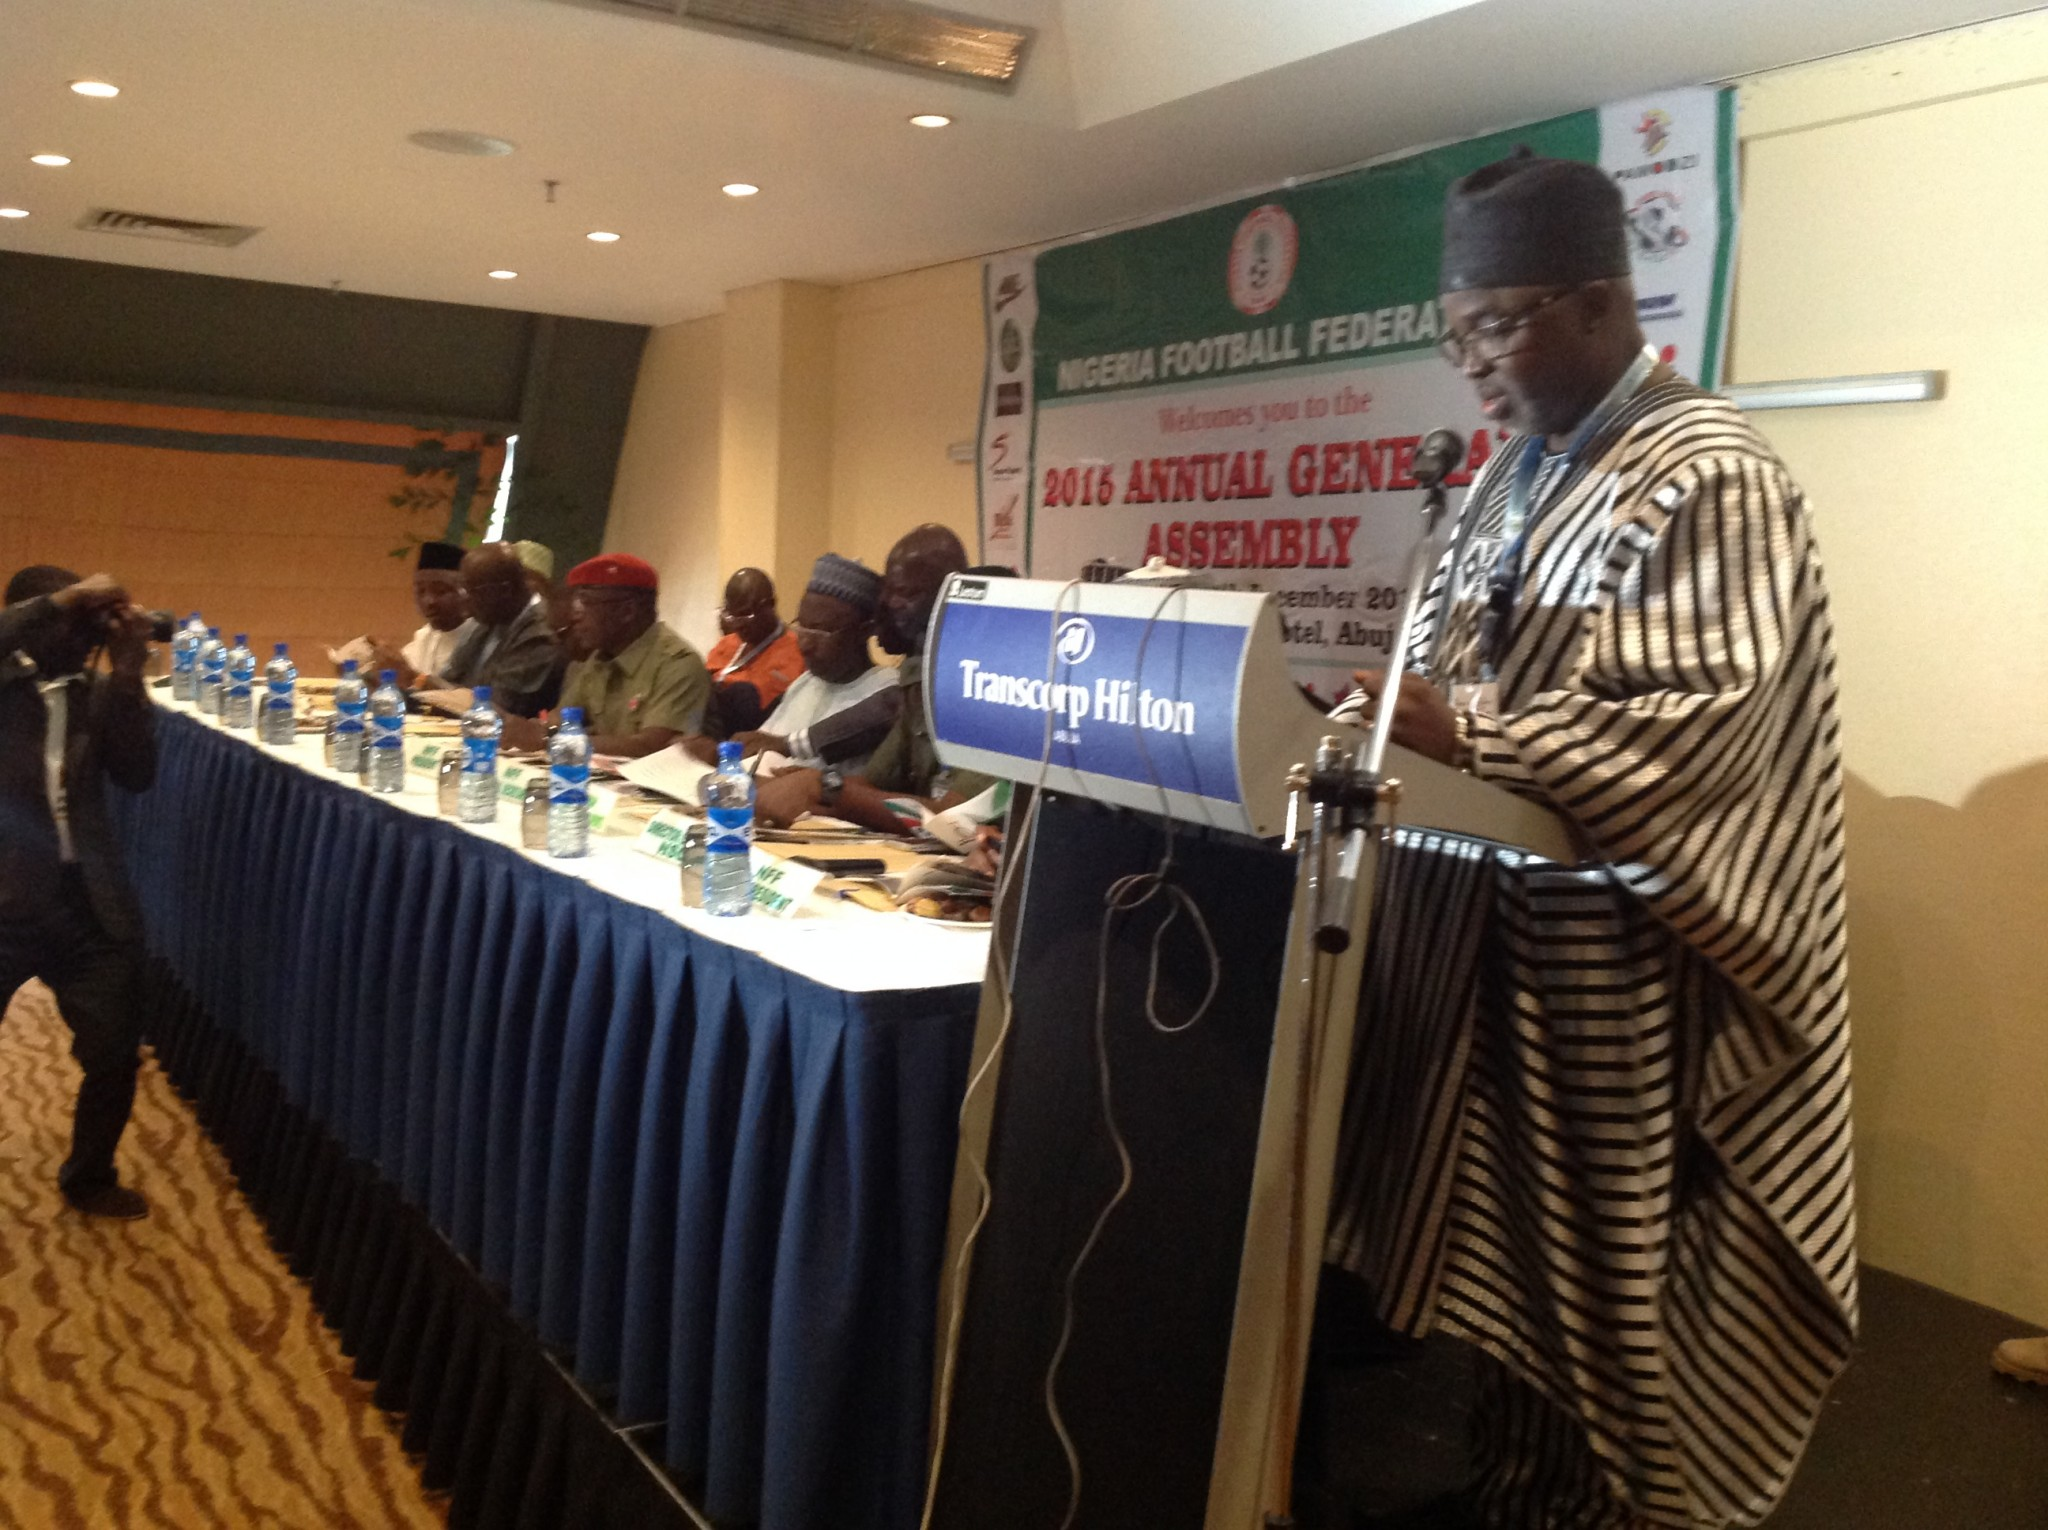 COMMUNIQUE OF THE 71ST ANNUAL GENERAL ASSEMBLY OF NIGERIA FOOTBALL FEDERATION